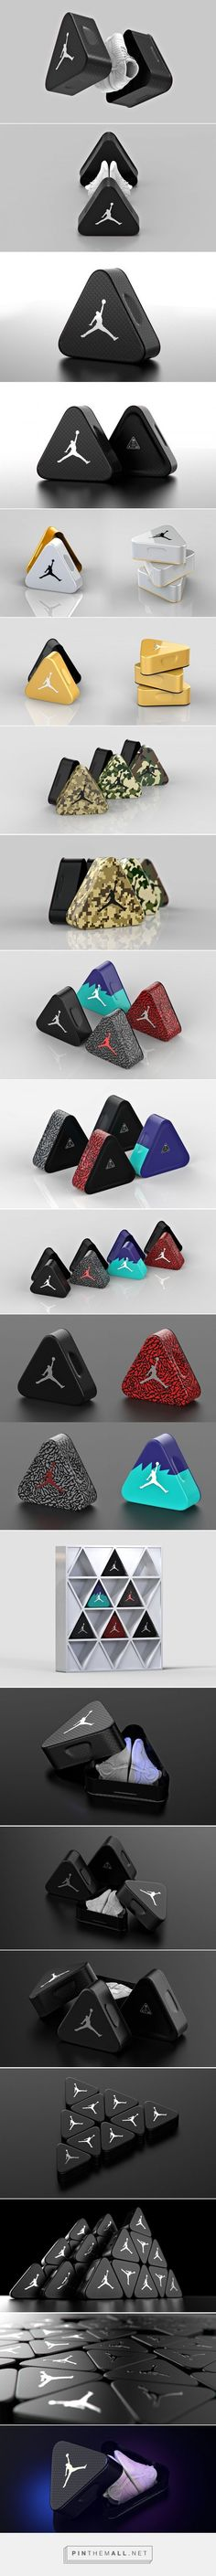 Air Jordan Triangle Shoe box concept packaging by Tomislav Zvonaric - http://www.packagingoftheworld.com/2017/06/air-jordan-triangle-aluminum-shoebox.html